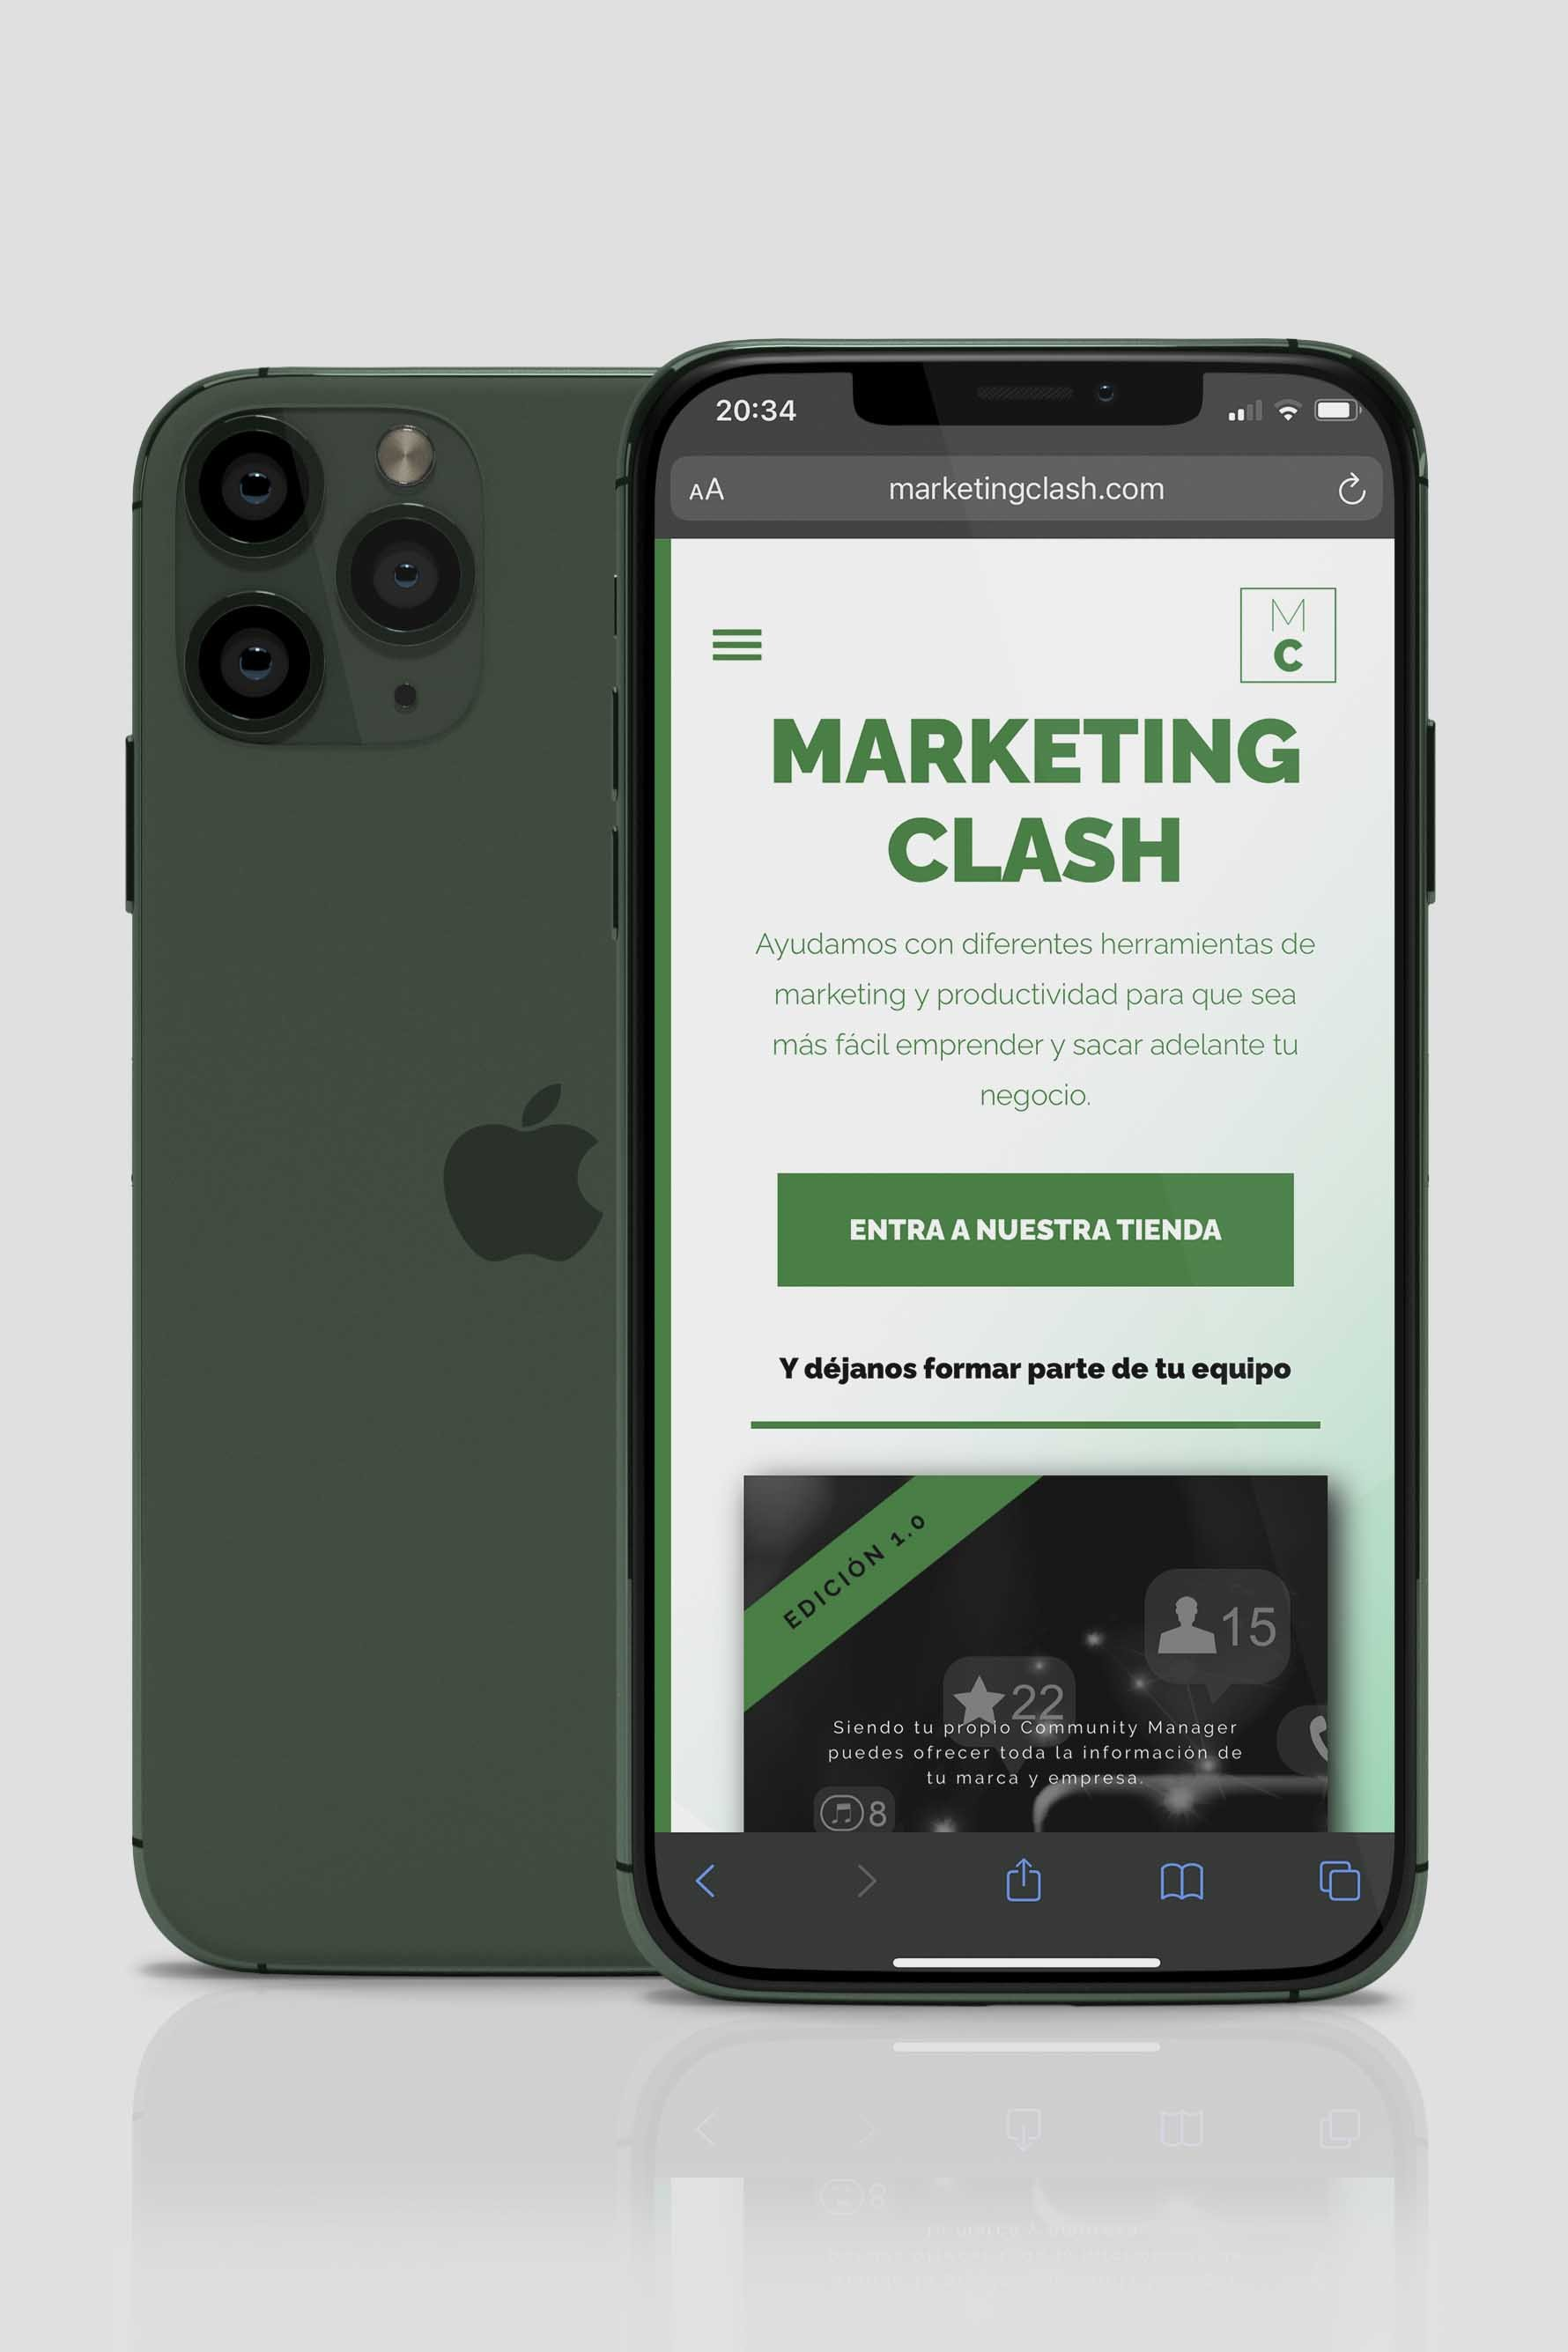 MARKETING CLASH